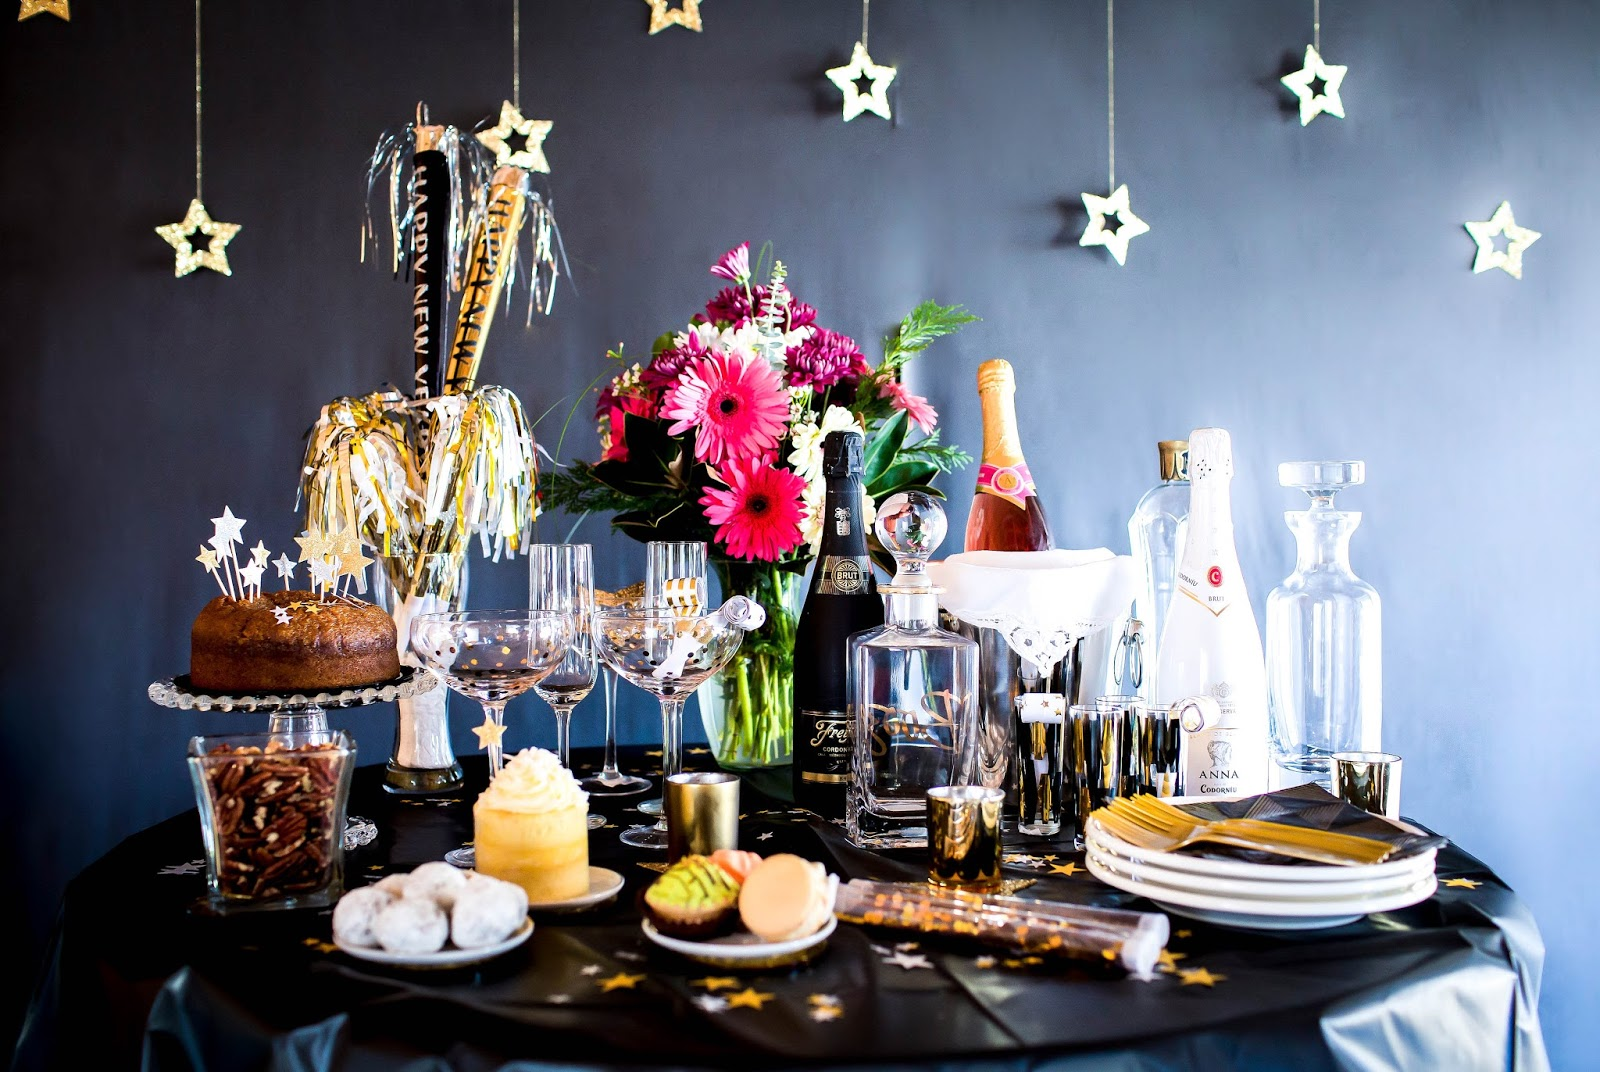 New Years Eve Party Ideas, New Years Eve Decorations, New Years Decor, New Years party supplies from swoozies, Swoozies NYE, NYE party, NYE outfits, cute new years outfit, sequin shorts, sequined highwaisted shorts, sequin maxi dress, sequined dress, feather fringe skirt, sequined short sleeve top, sequin top, new years eve tablescape, fashion bloggers, cute NYE party ideas, black and gold decor, NYE drinkware, new years cups, new years photoshoot, new years eve photoshoot, new years photography ideas